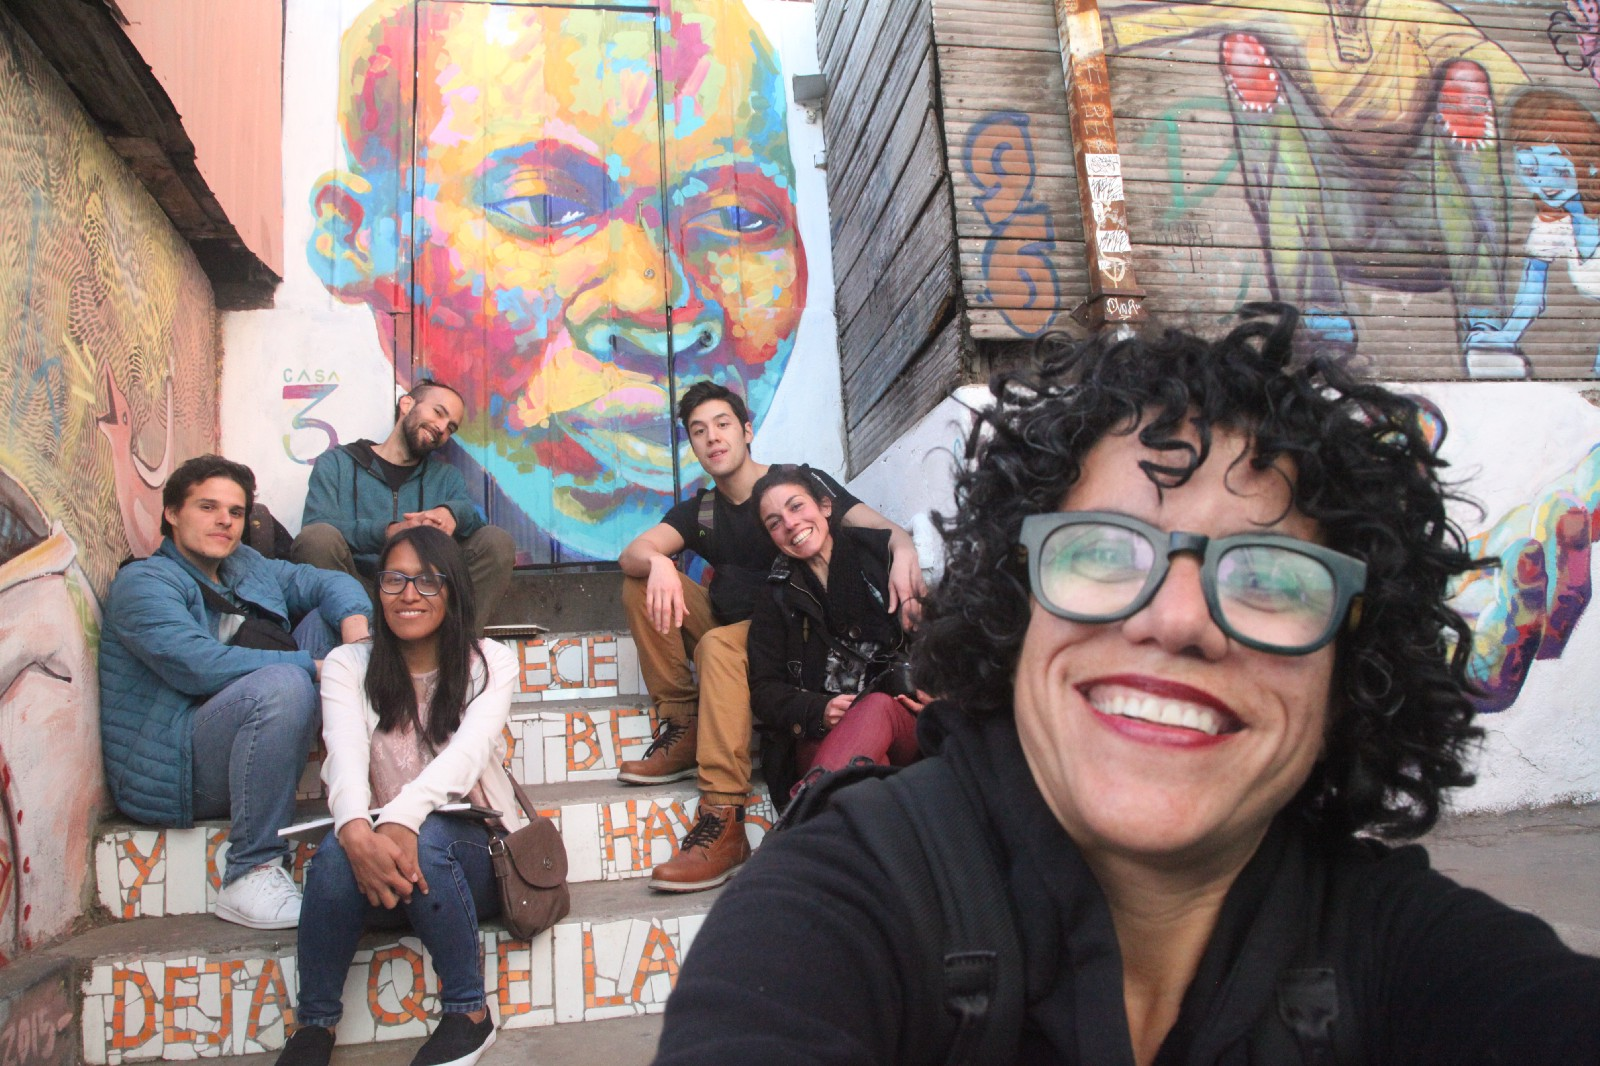 Bea Ramos (front right) regularly travels the world to engage directly with the artists in the Dada community. She knows their families, their personal challenges, and their failures and successes. I don't think you will see Zuckerberg traveling halfway around the world to show up at your door to cook a meal with you anytime soon.